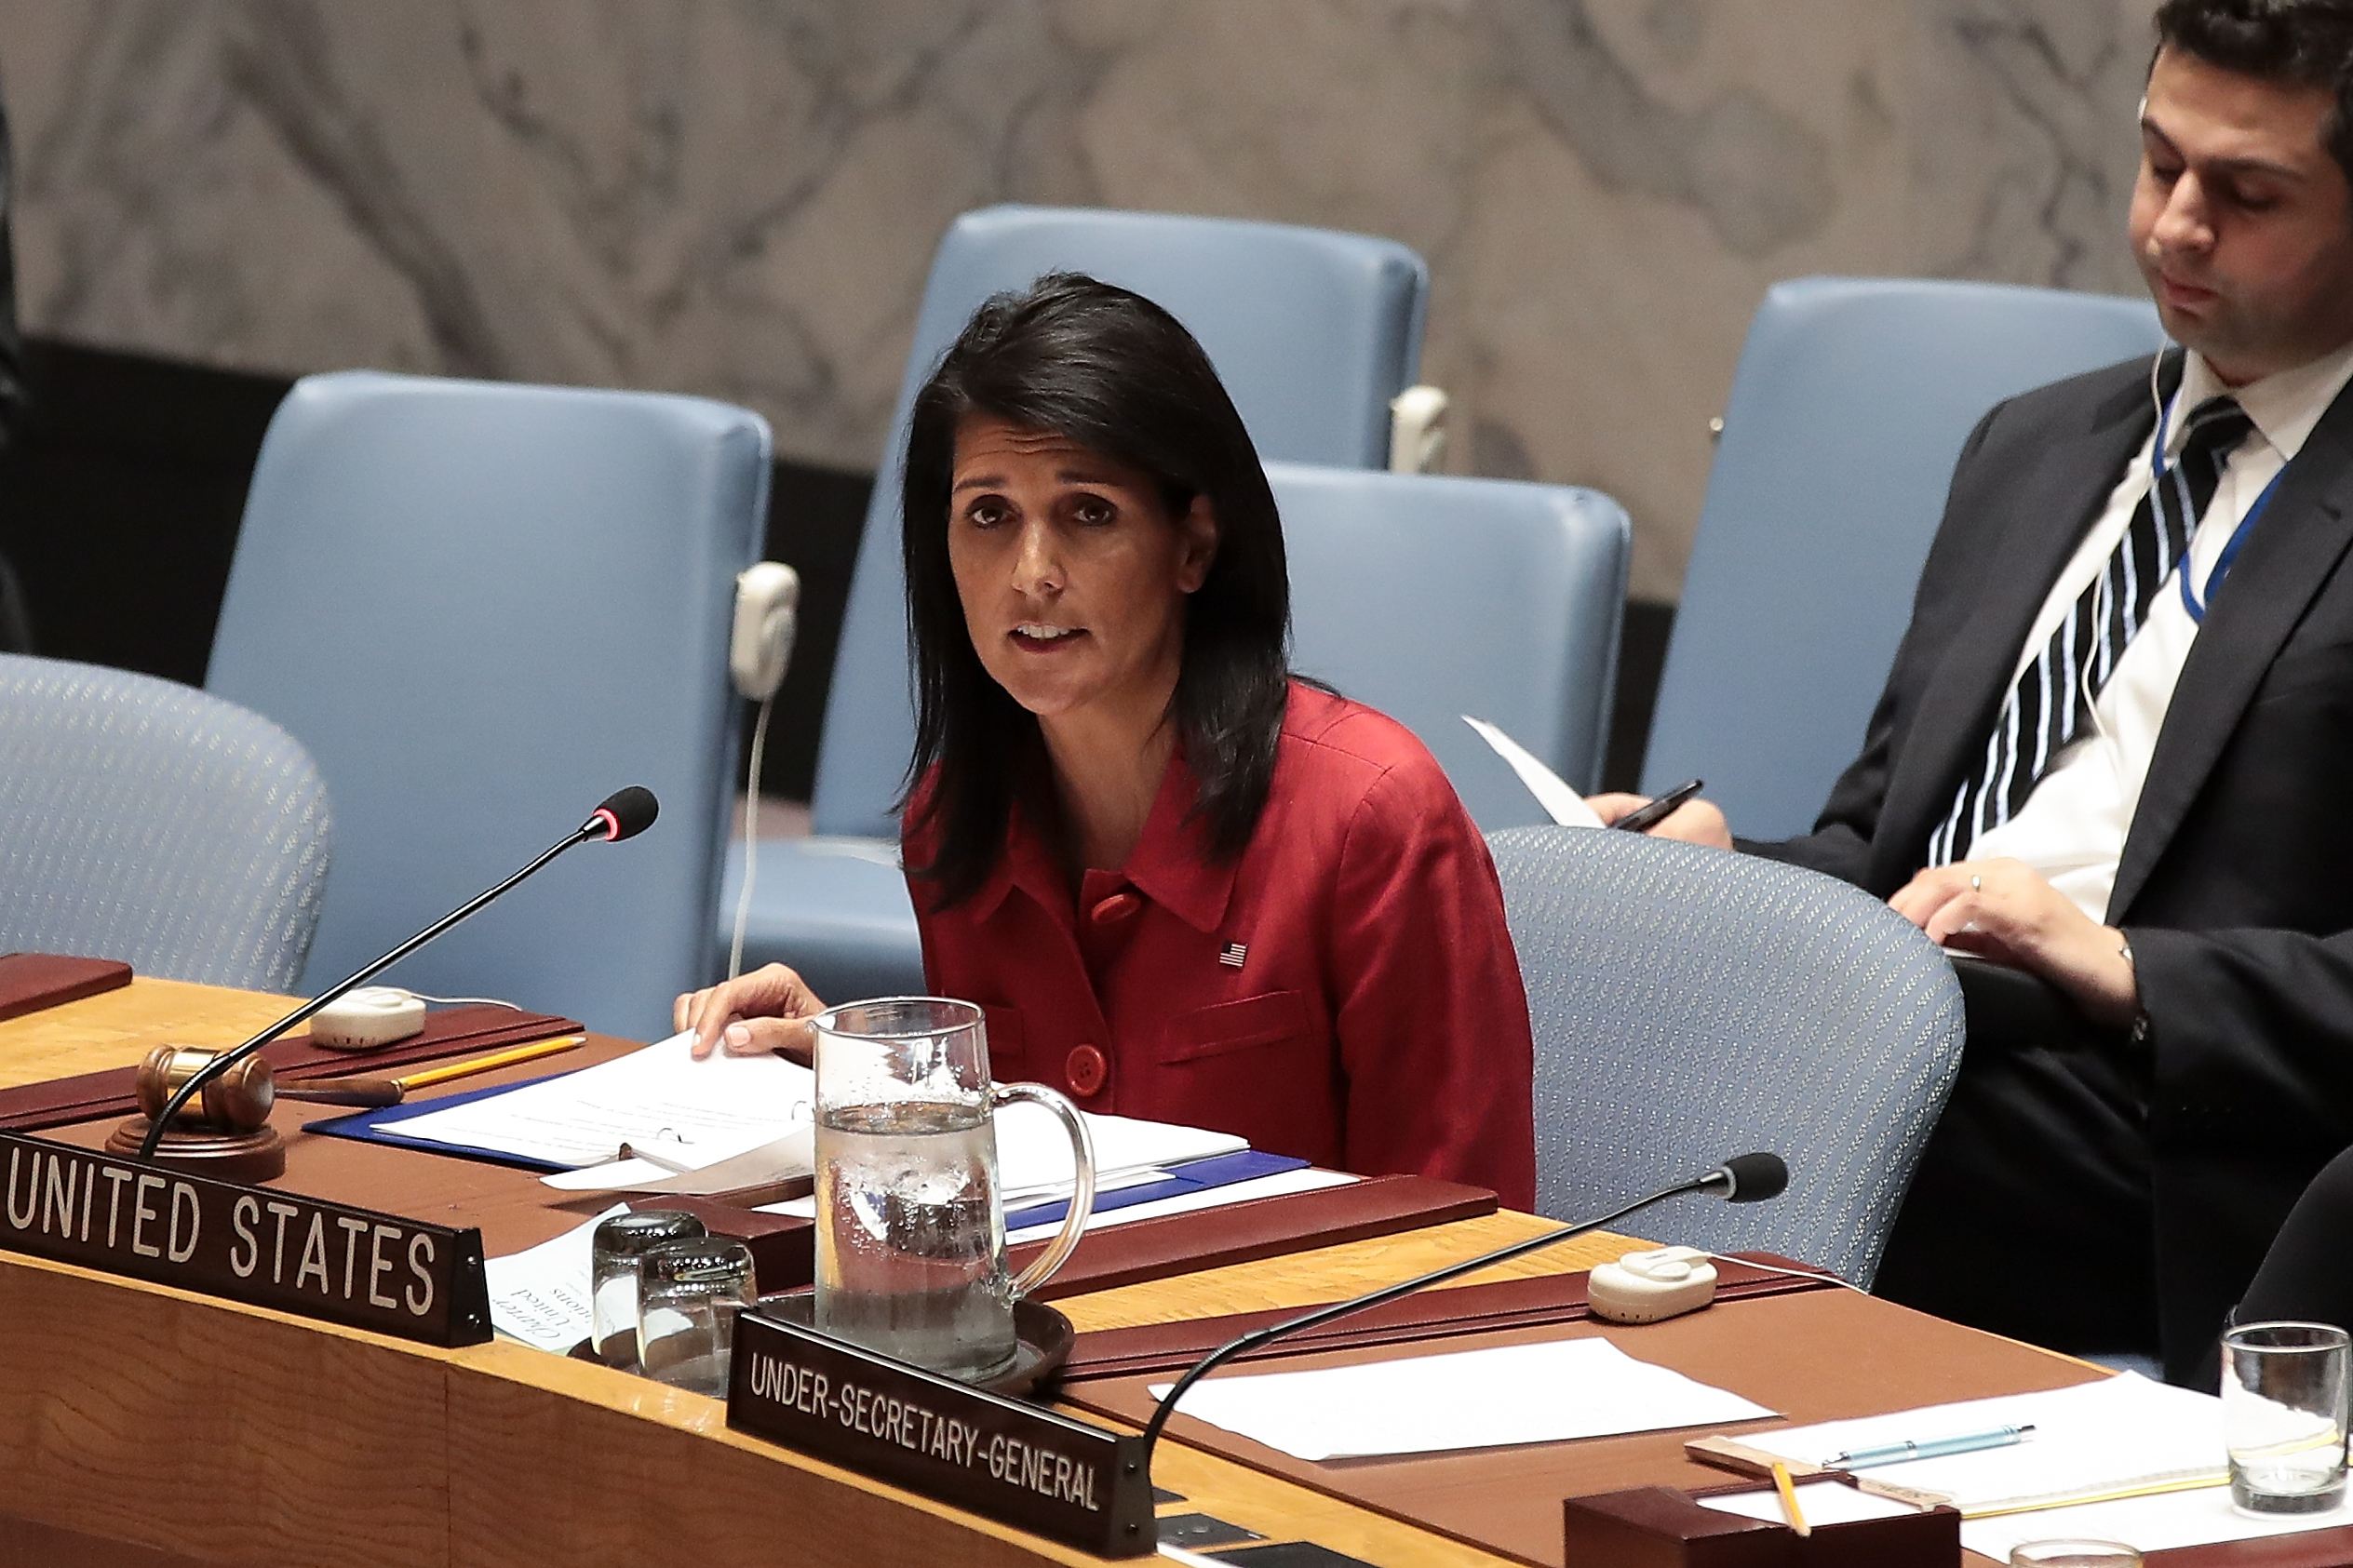 U.S. Ambassador to the United Nations Nikki Haley delivers remarks during a meeting of the United Nations Security Council concerning the situation in Syria, at UN headquarters, April 7, 2017 in New York City.